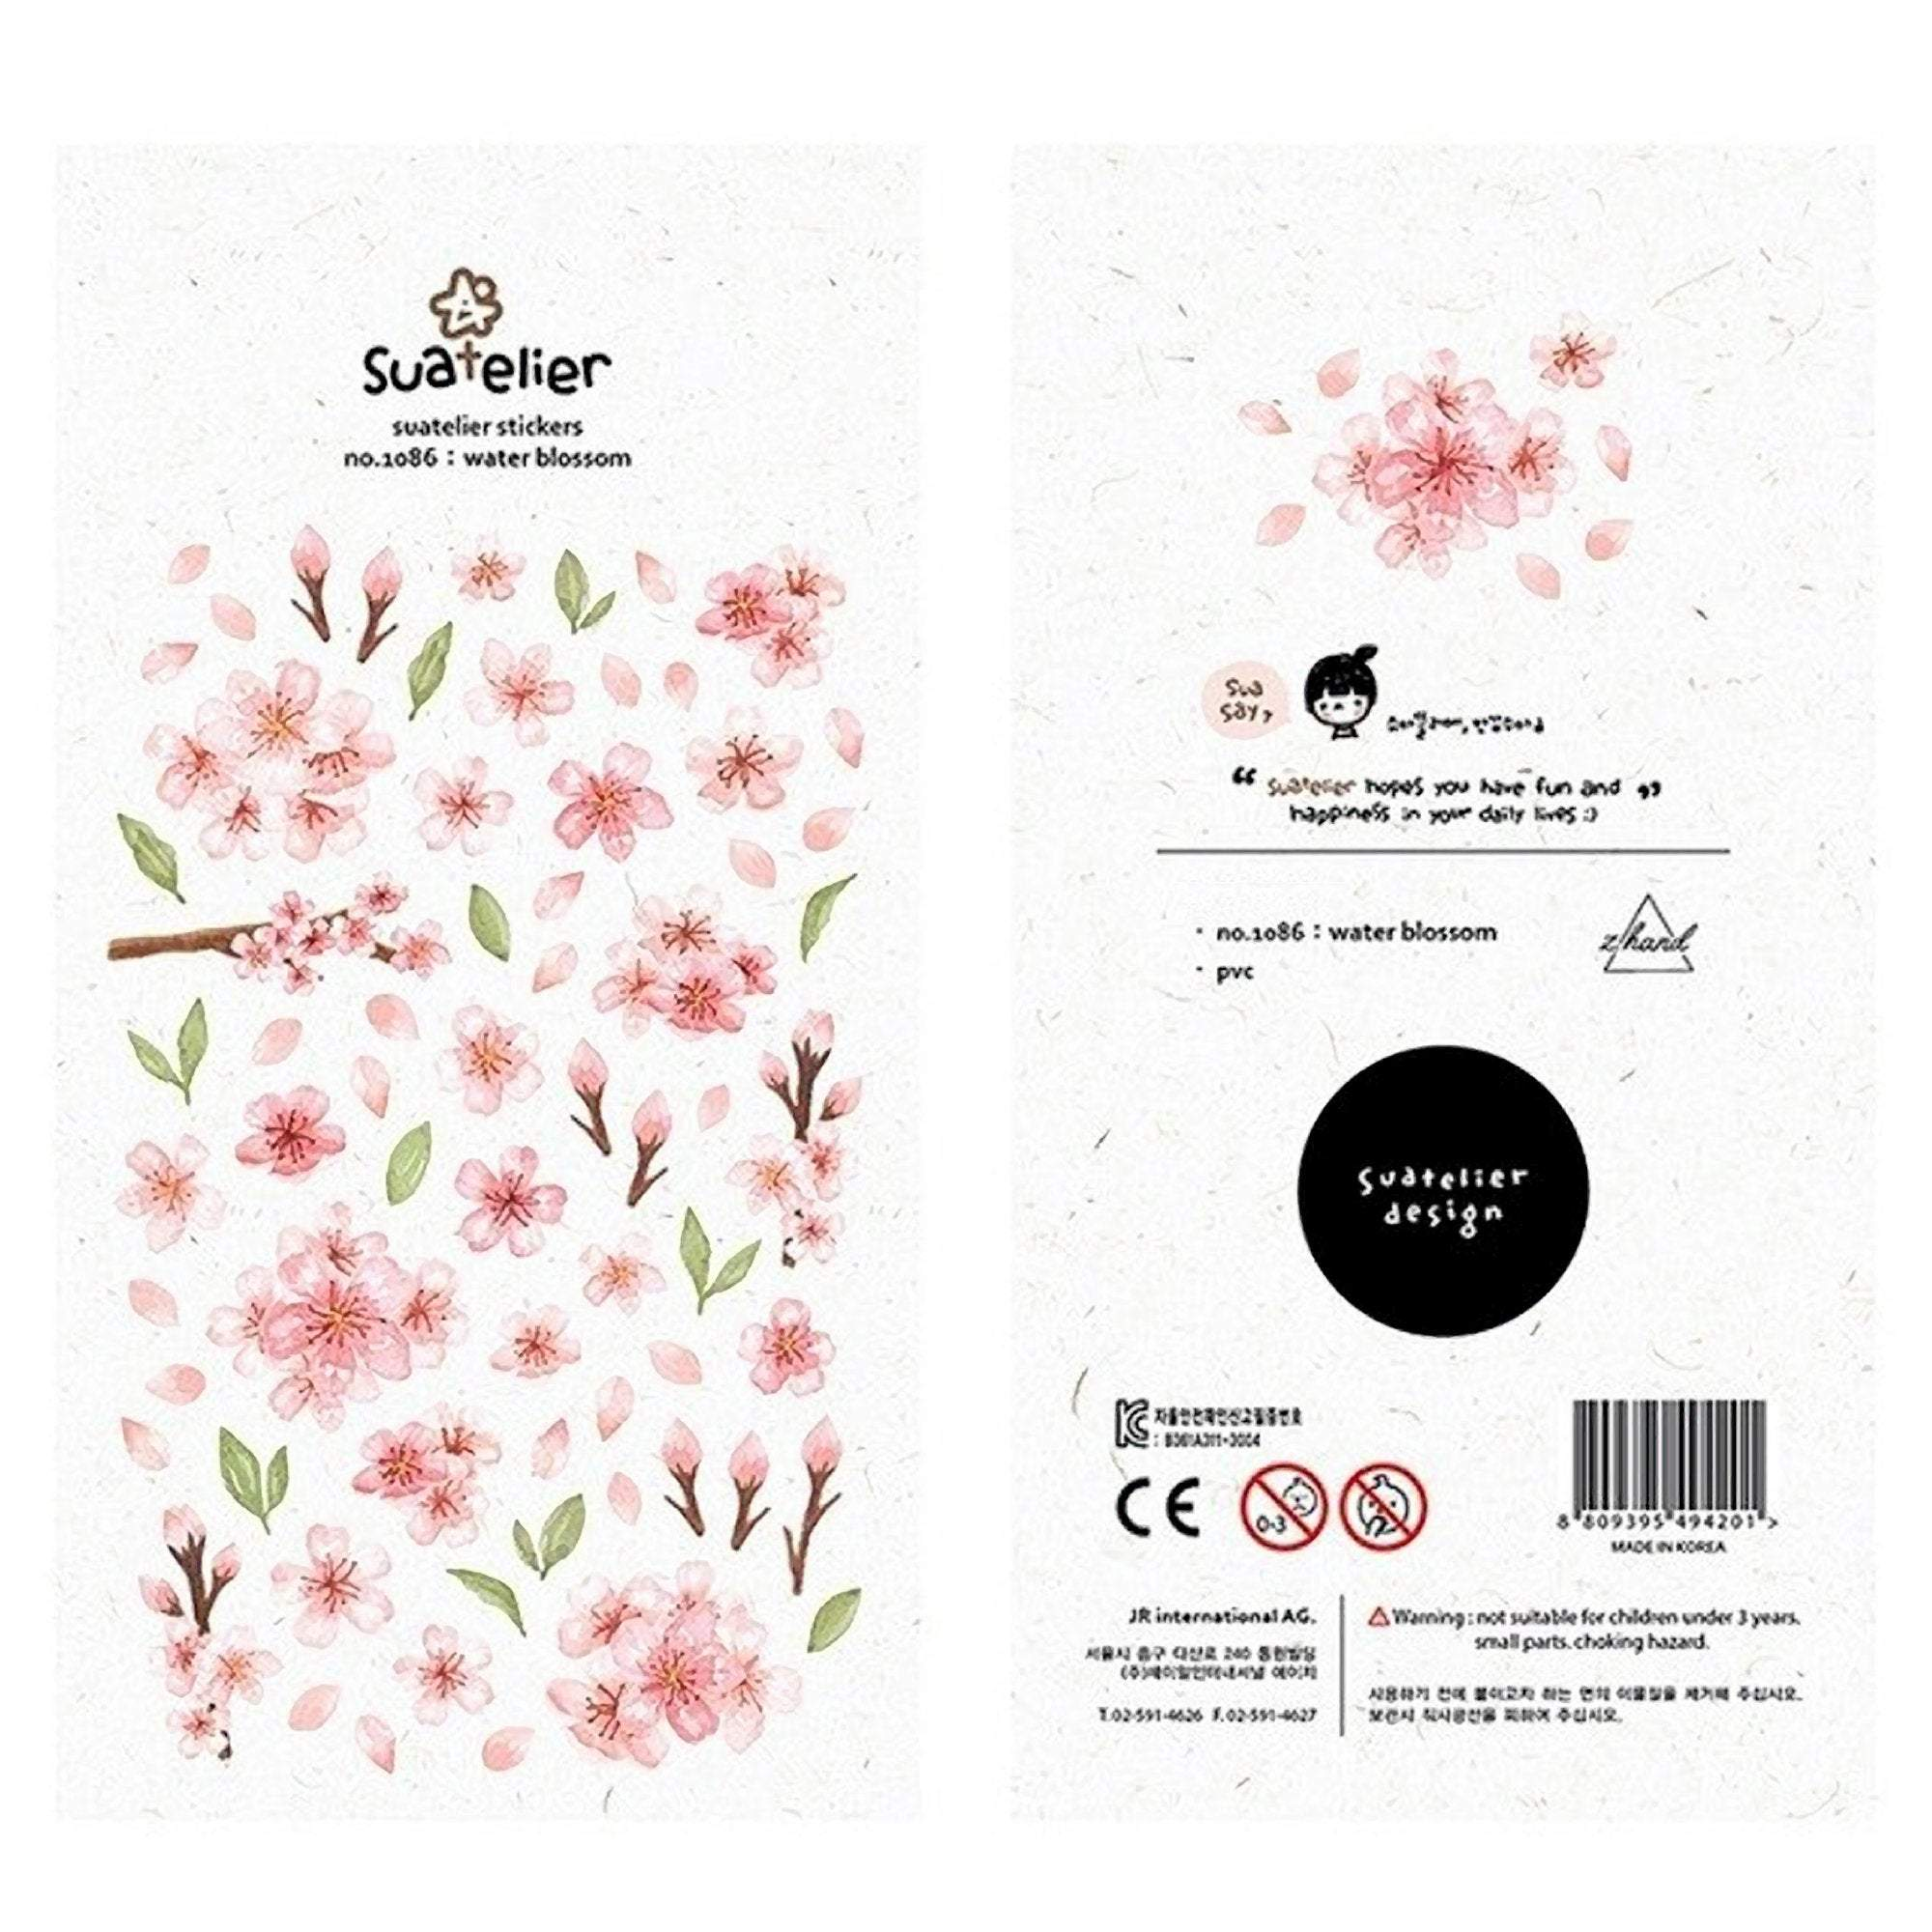 Suatelier Sonia PVC Transparent Stickers | Water Blossom Cherry Blossom Sakura - The Stationery Life!